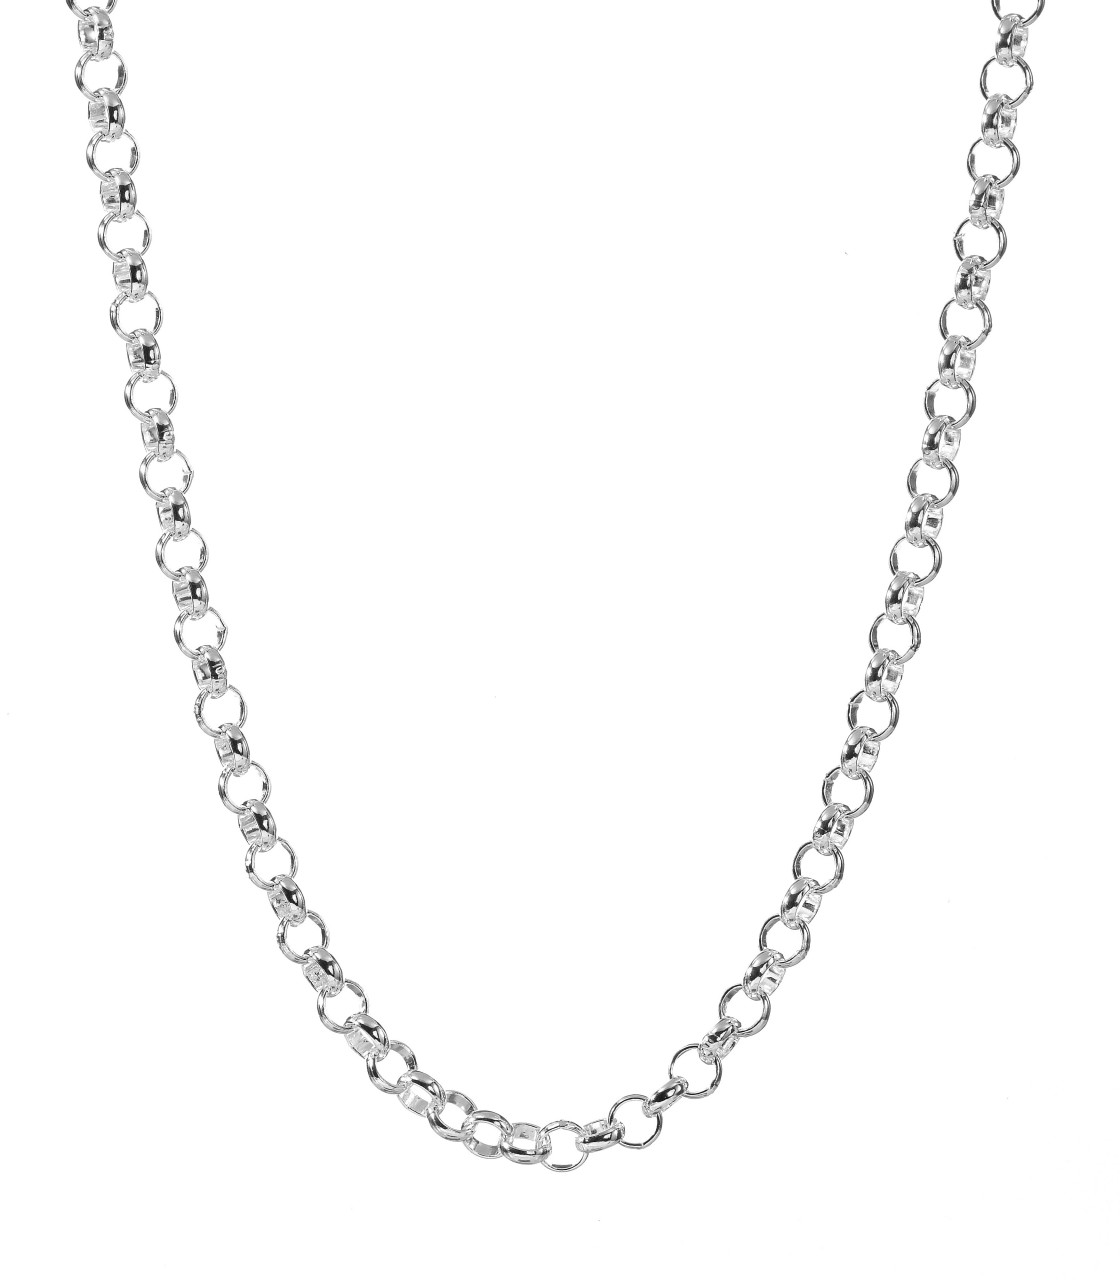 Chain HD PNG - 89798